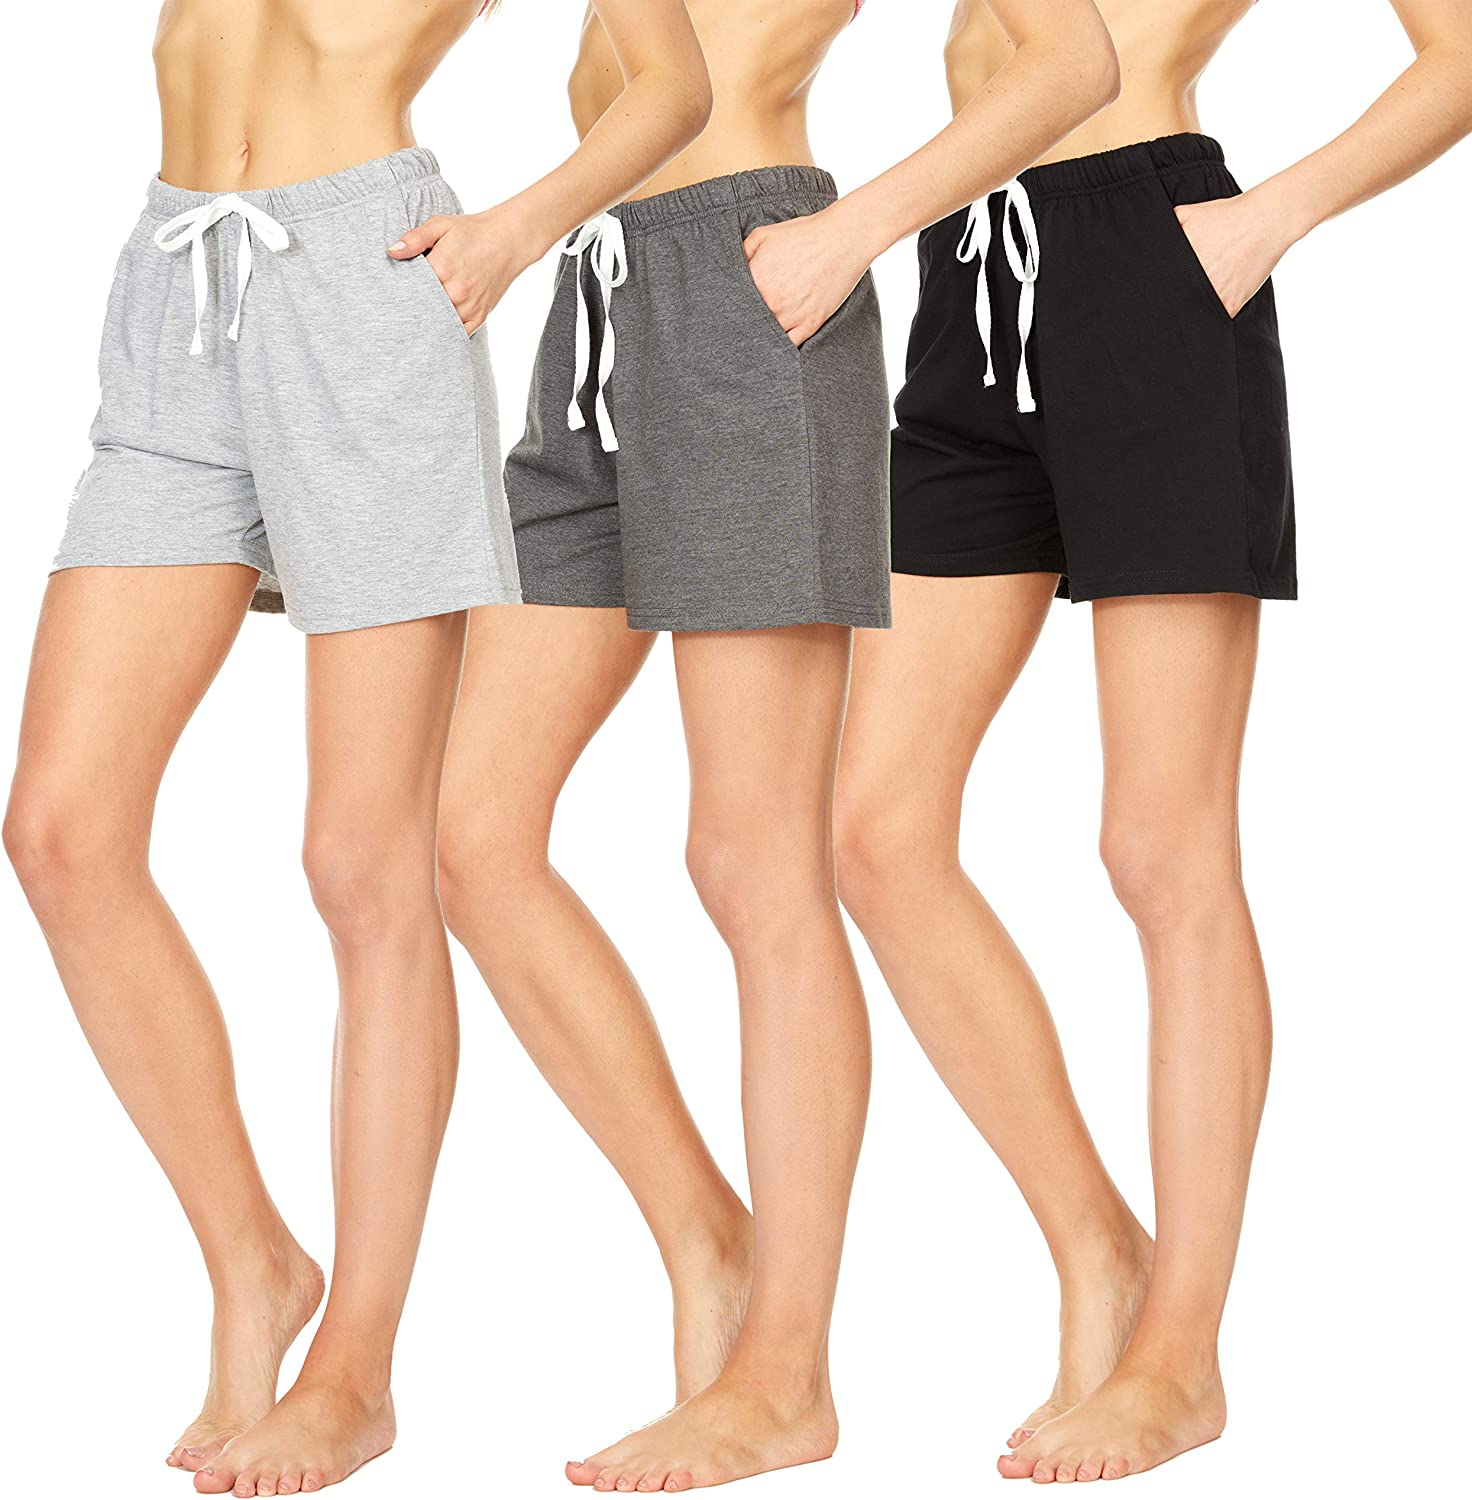 Essential Elements 3 Pack: Women's 100% Cotton Casual Active Gym Lounge Sleep Bottom Pajama Shorts